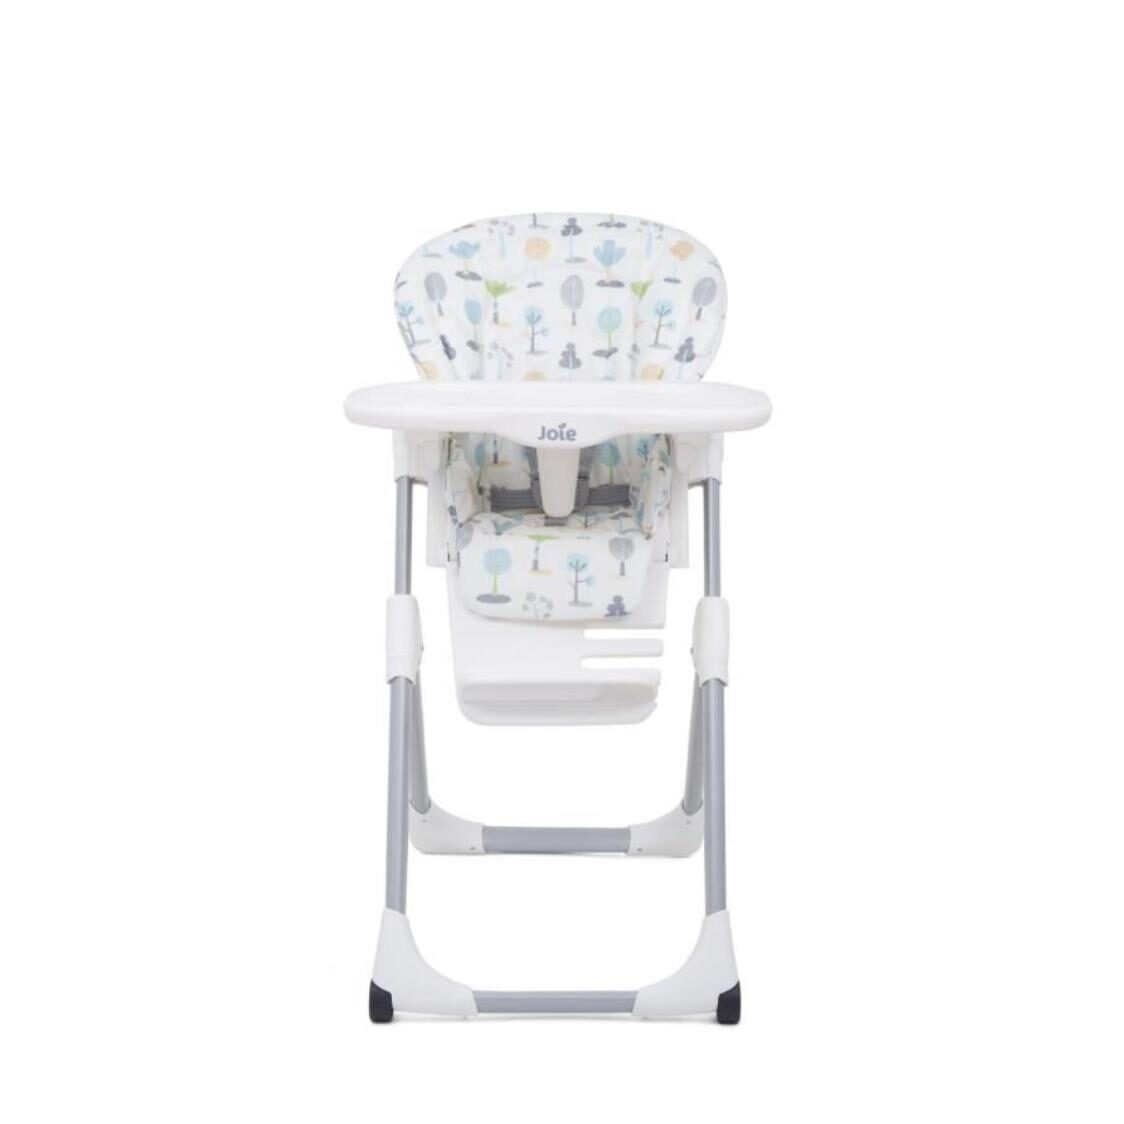 Joie Mimzy Pastel Forest High Chair